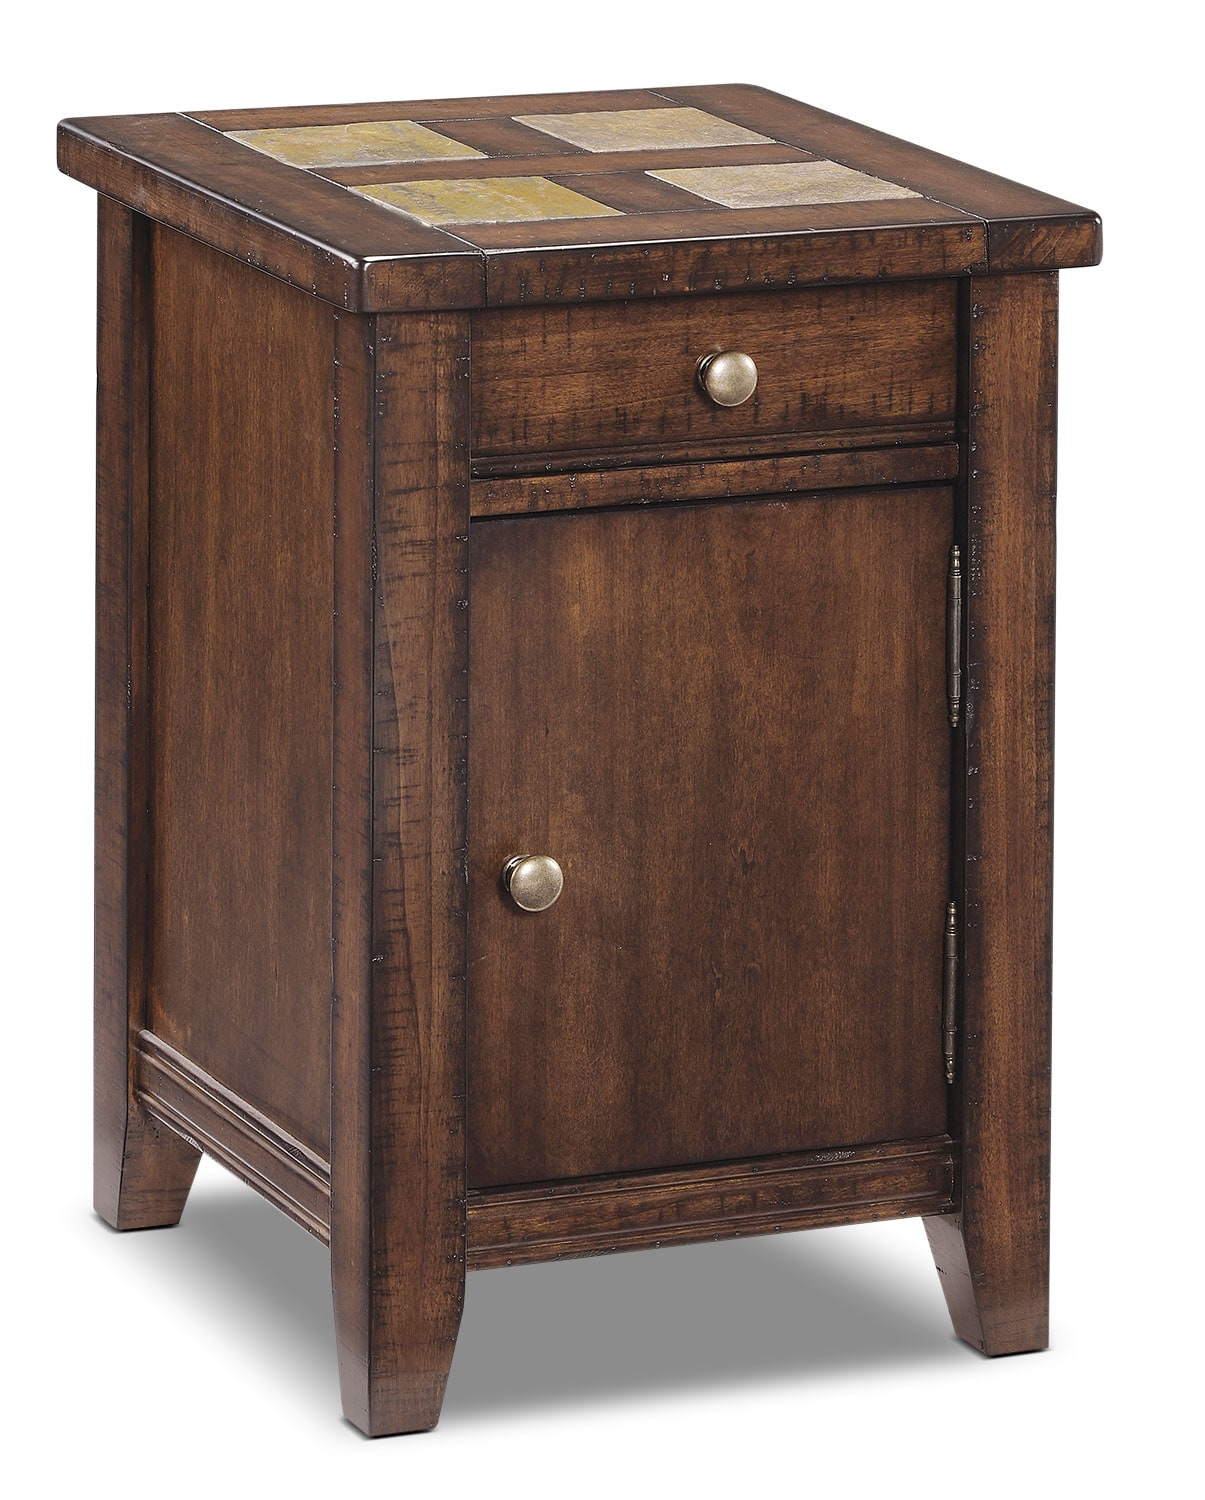 Online Only - Allister Accent Table - Cinnamon